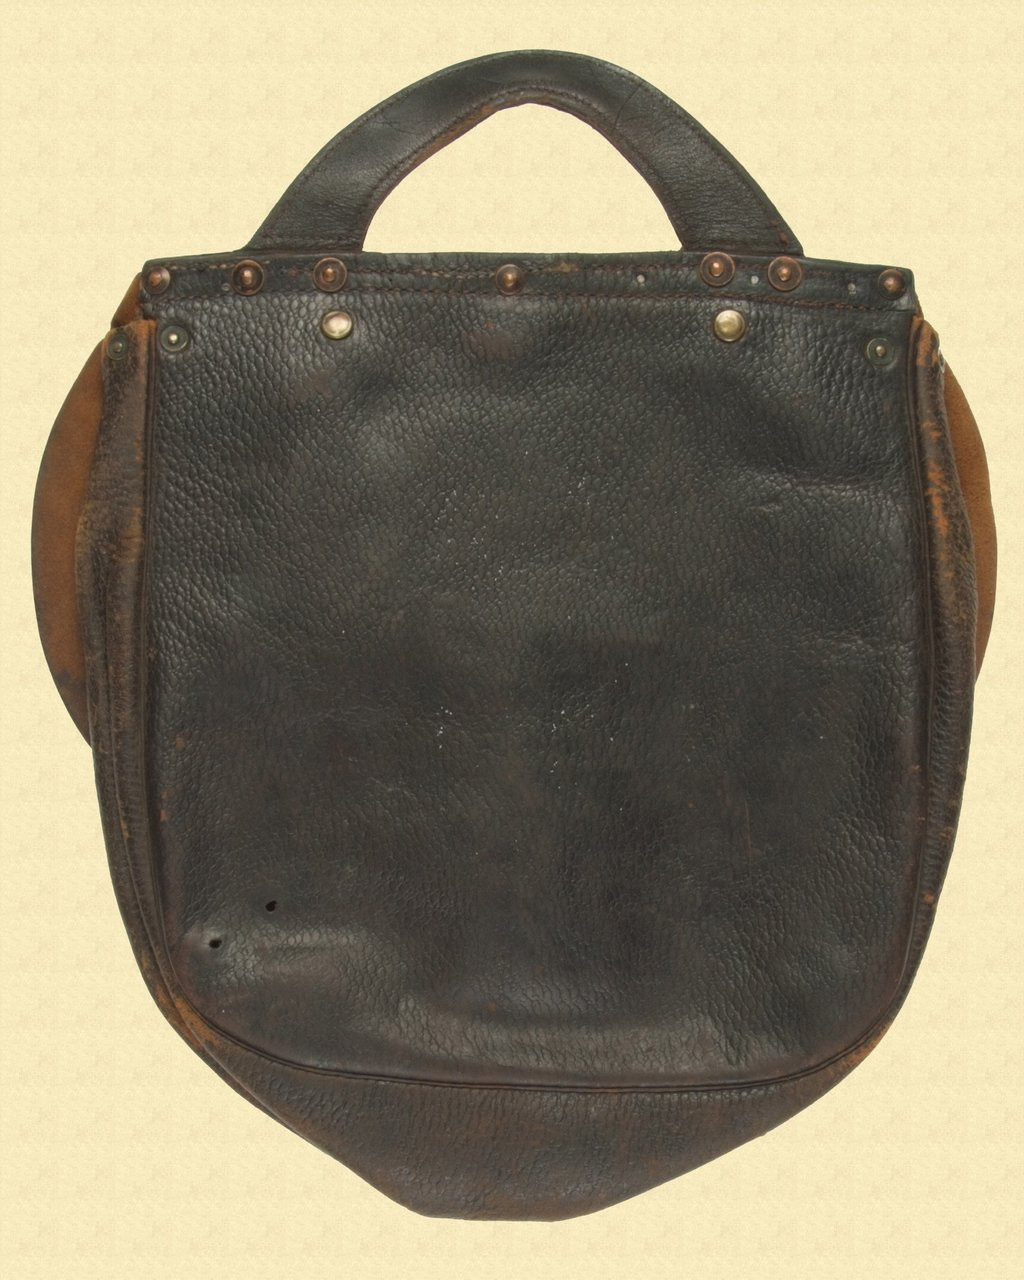 US LEATHER BAG - M3590